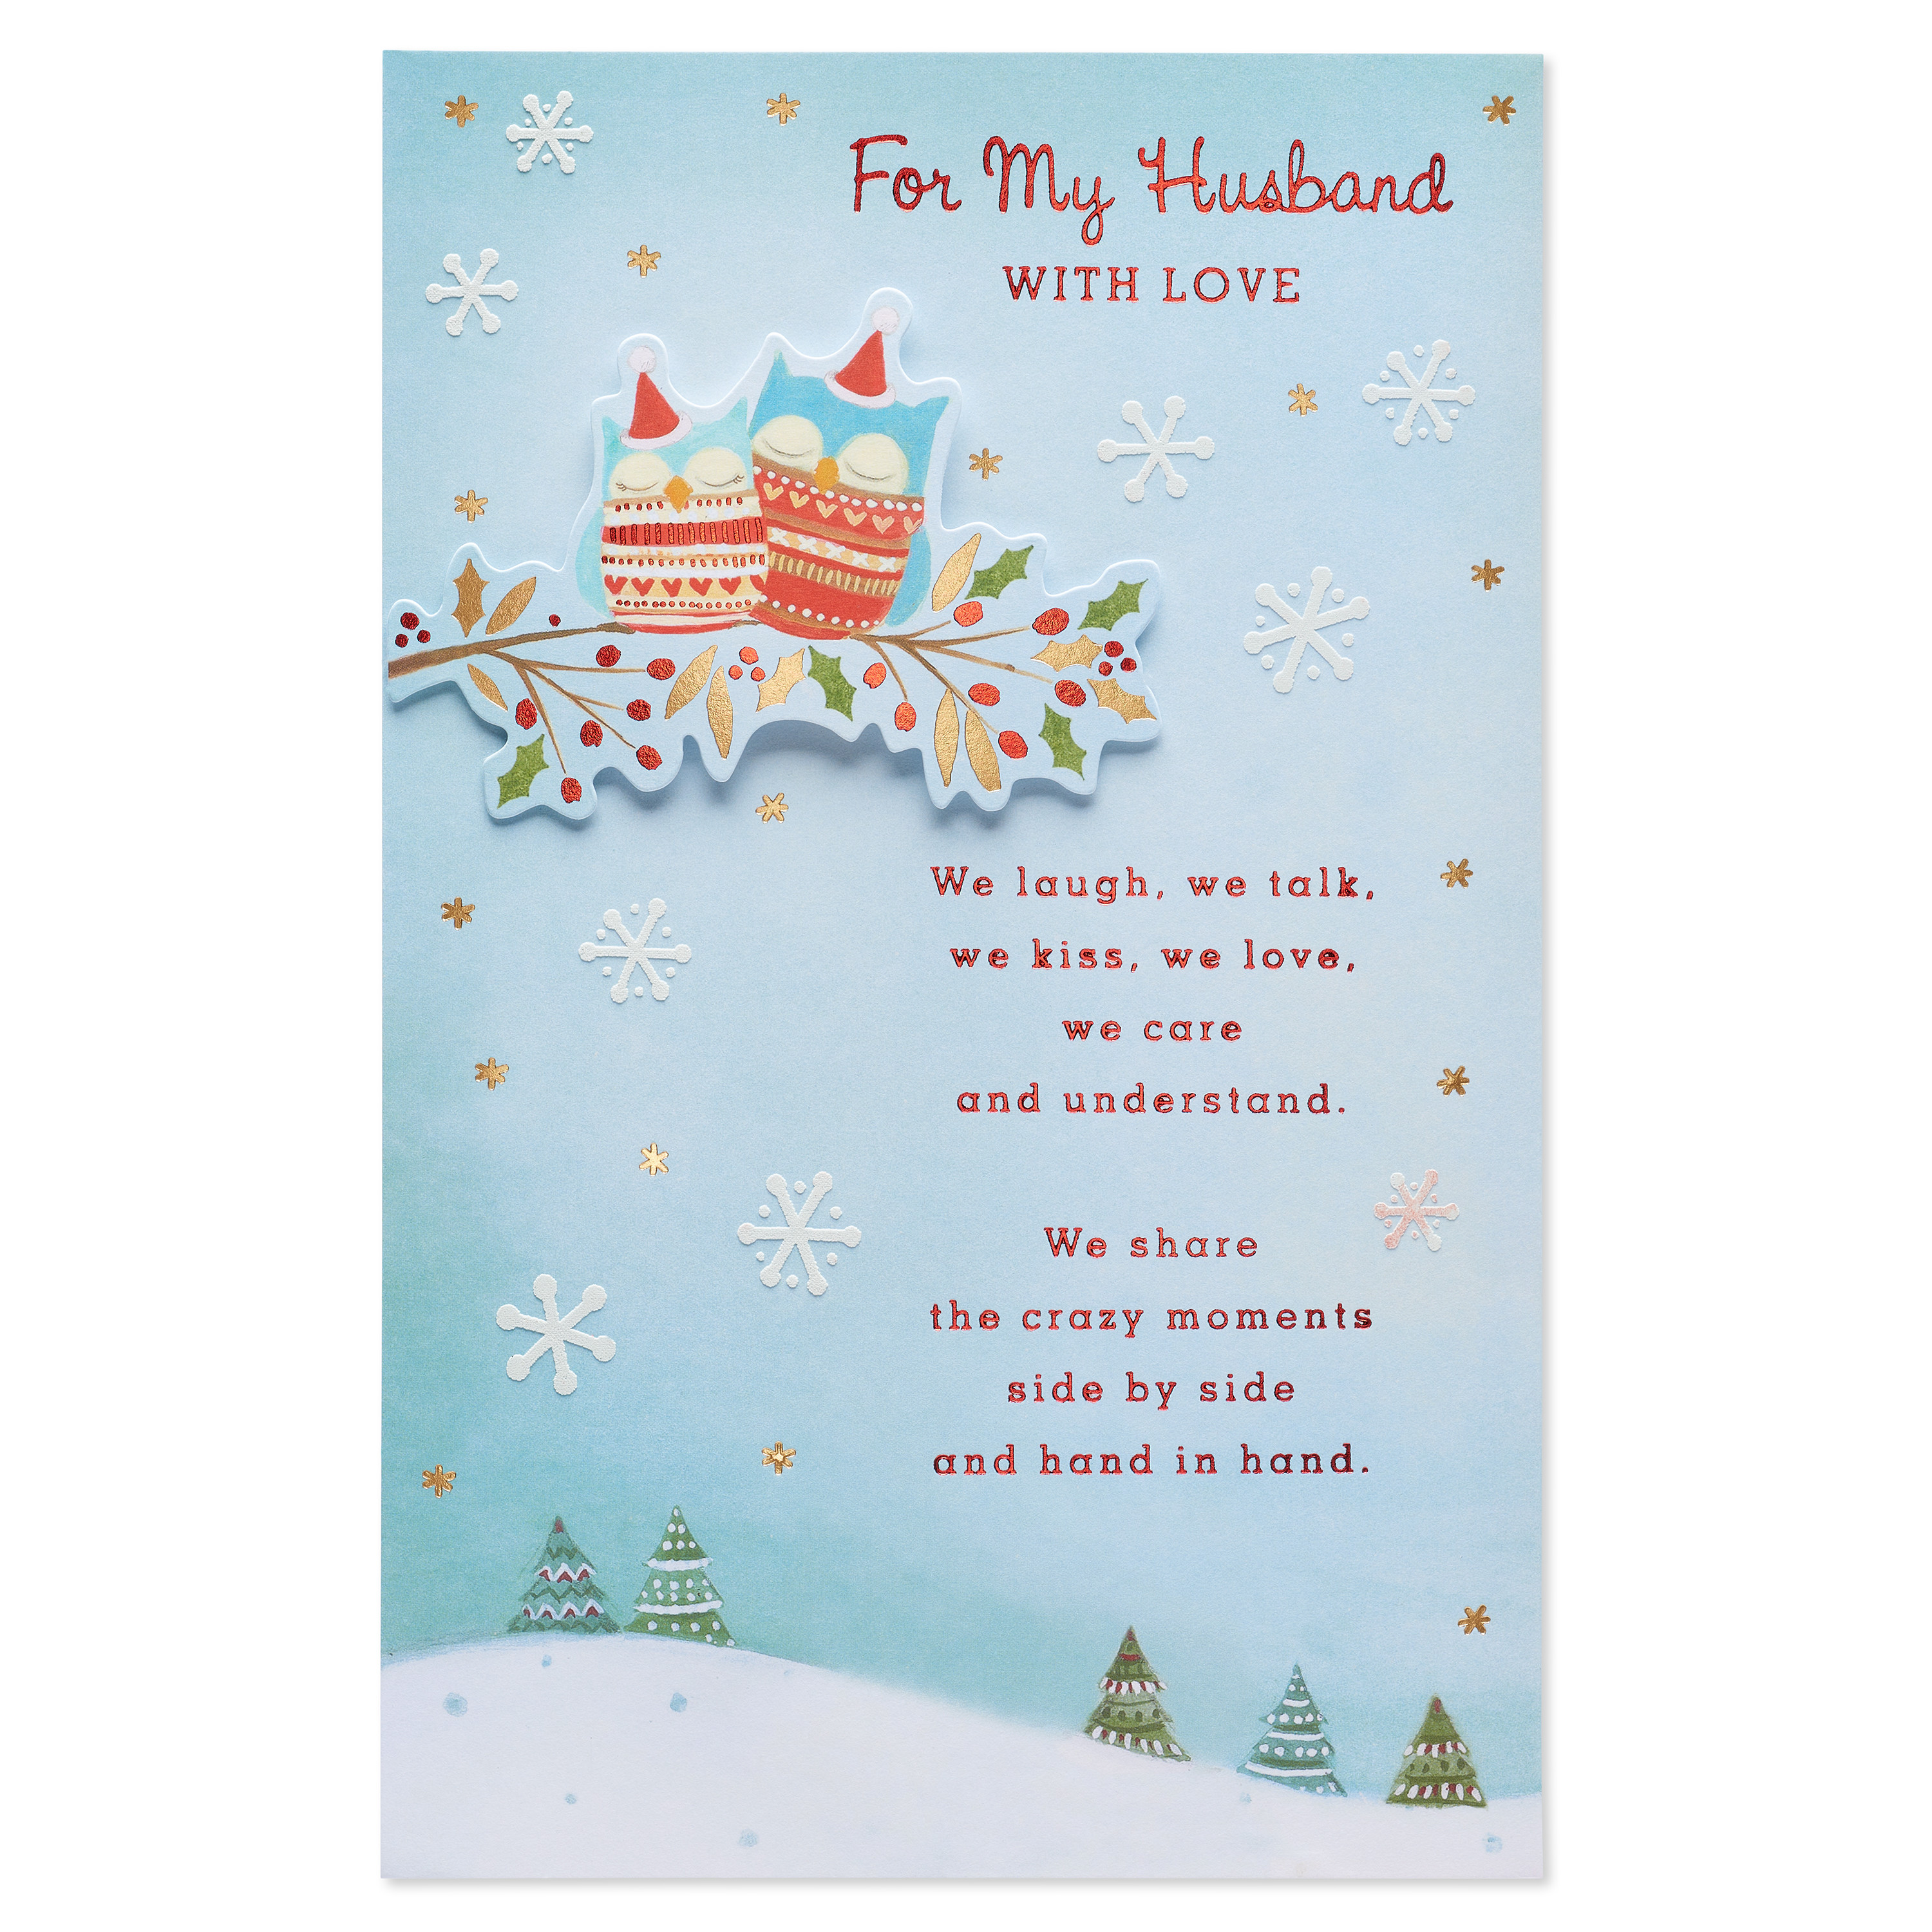 AMERICAN GREETINGS® Owls Christmas Card for Husband with Foil